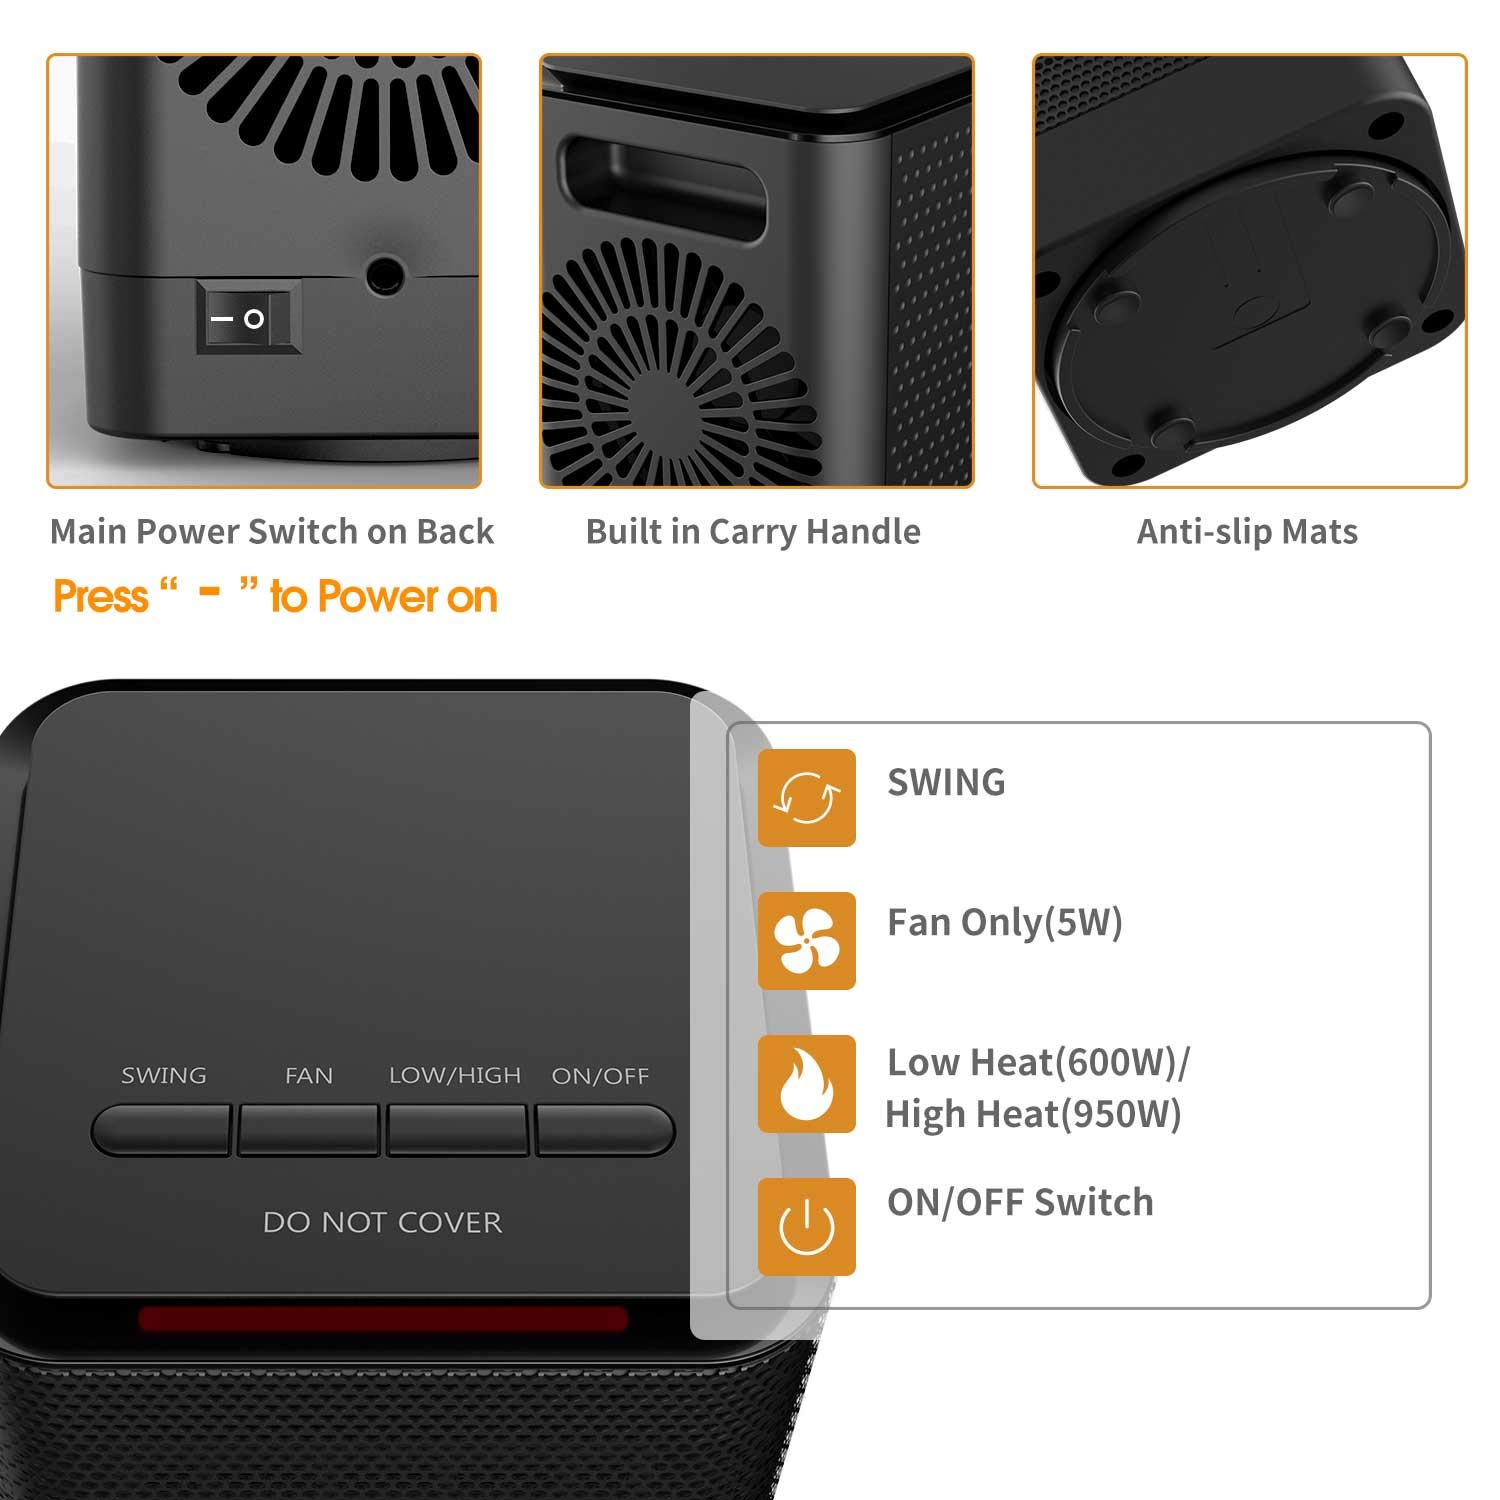 Oscillating Space Heater, Indoor Personal Heater, Electric Ceramic Heater with Over Heat Protection, Tip Over Protection, 3 Heat Settings, Quick Heat up for Home Office 71eVIr3o2BQL